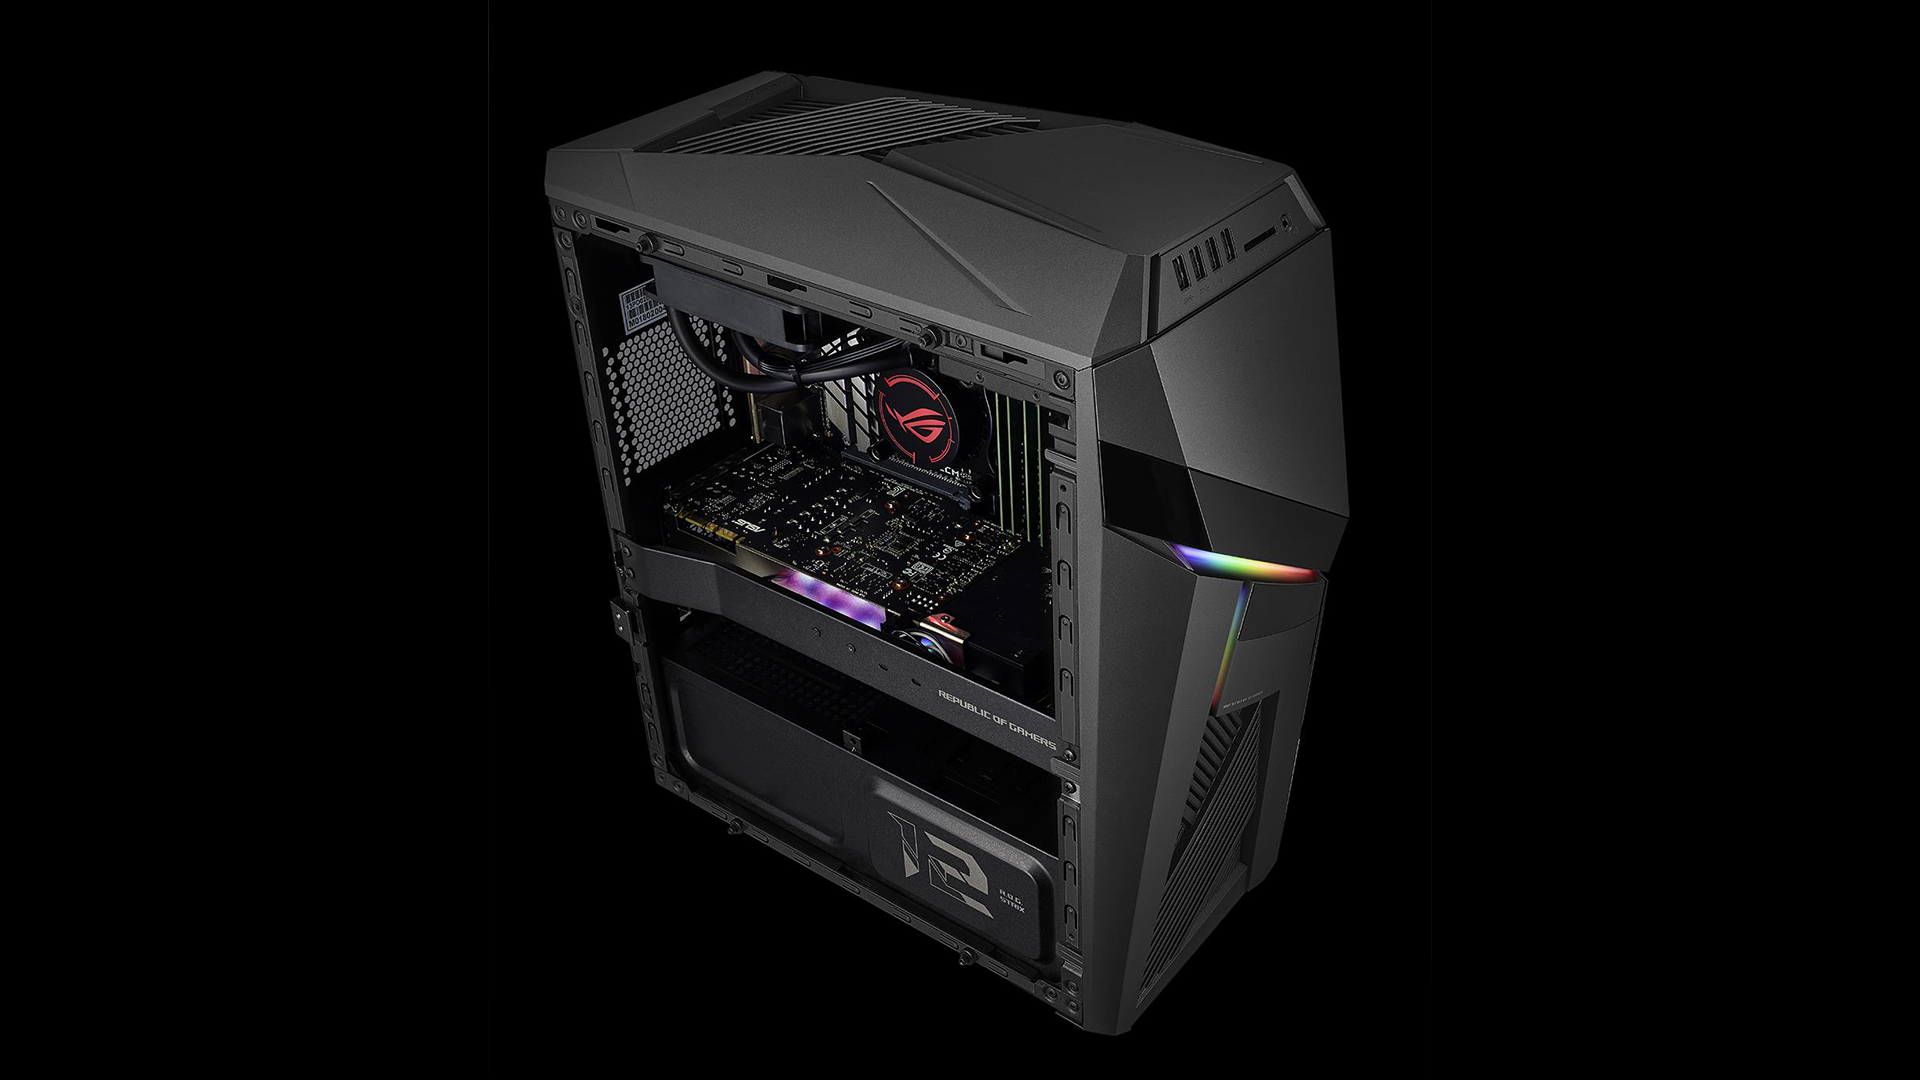 ASUS announces water-cooled ROG STRIX GL12CX, equipped with Intel's